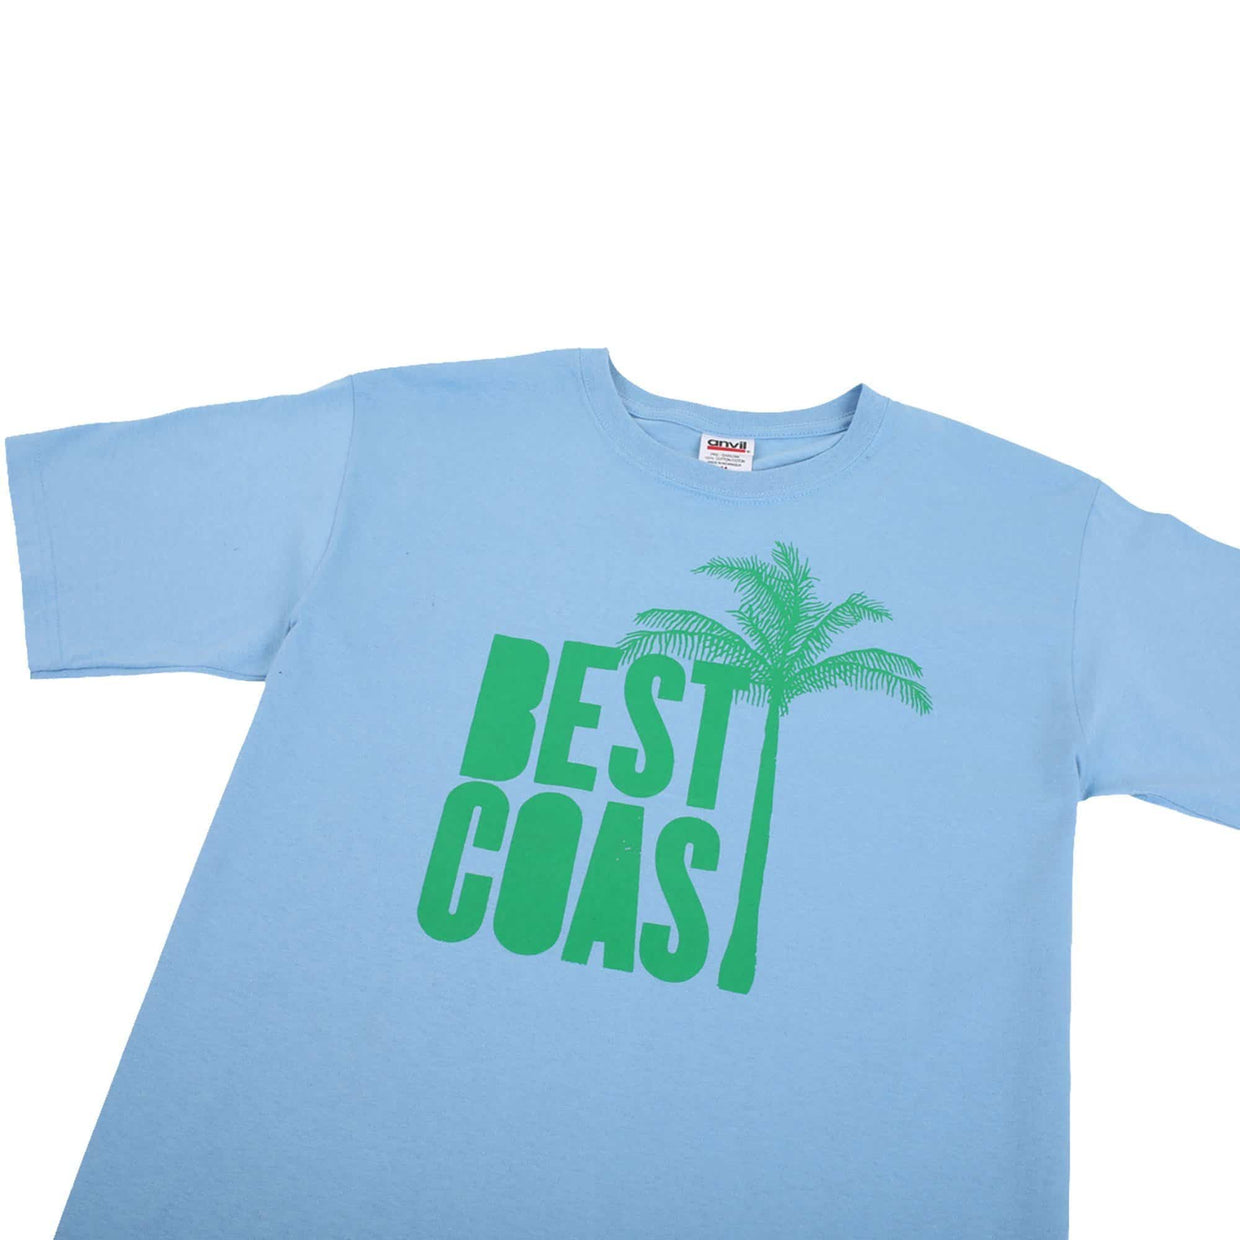 'Best Coast Palm' T-Shirt